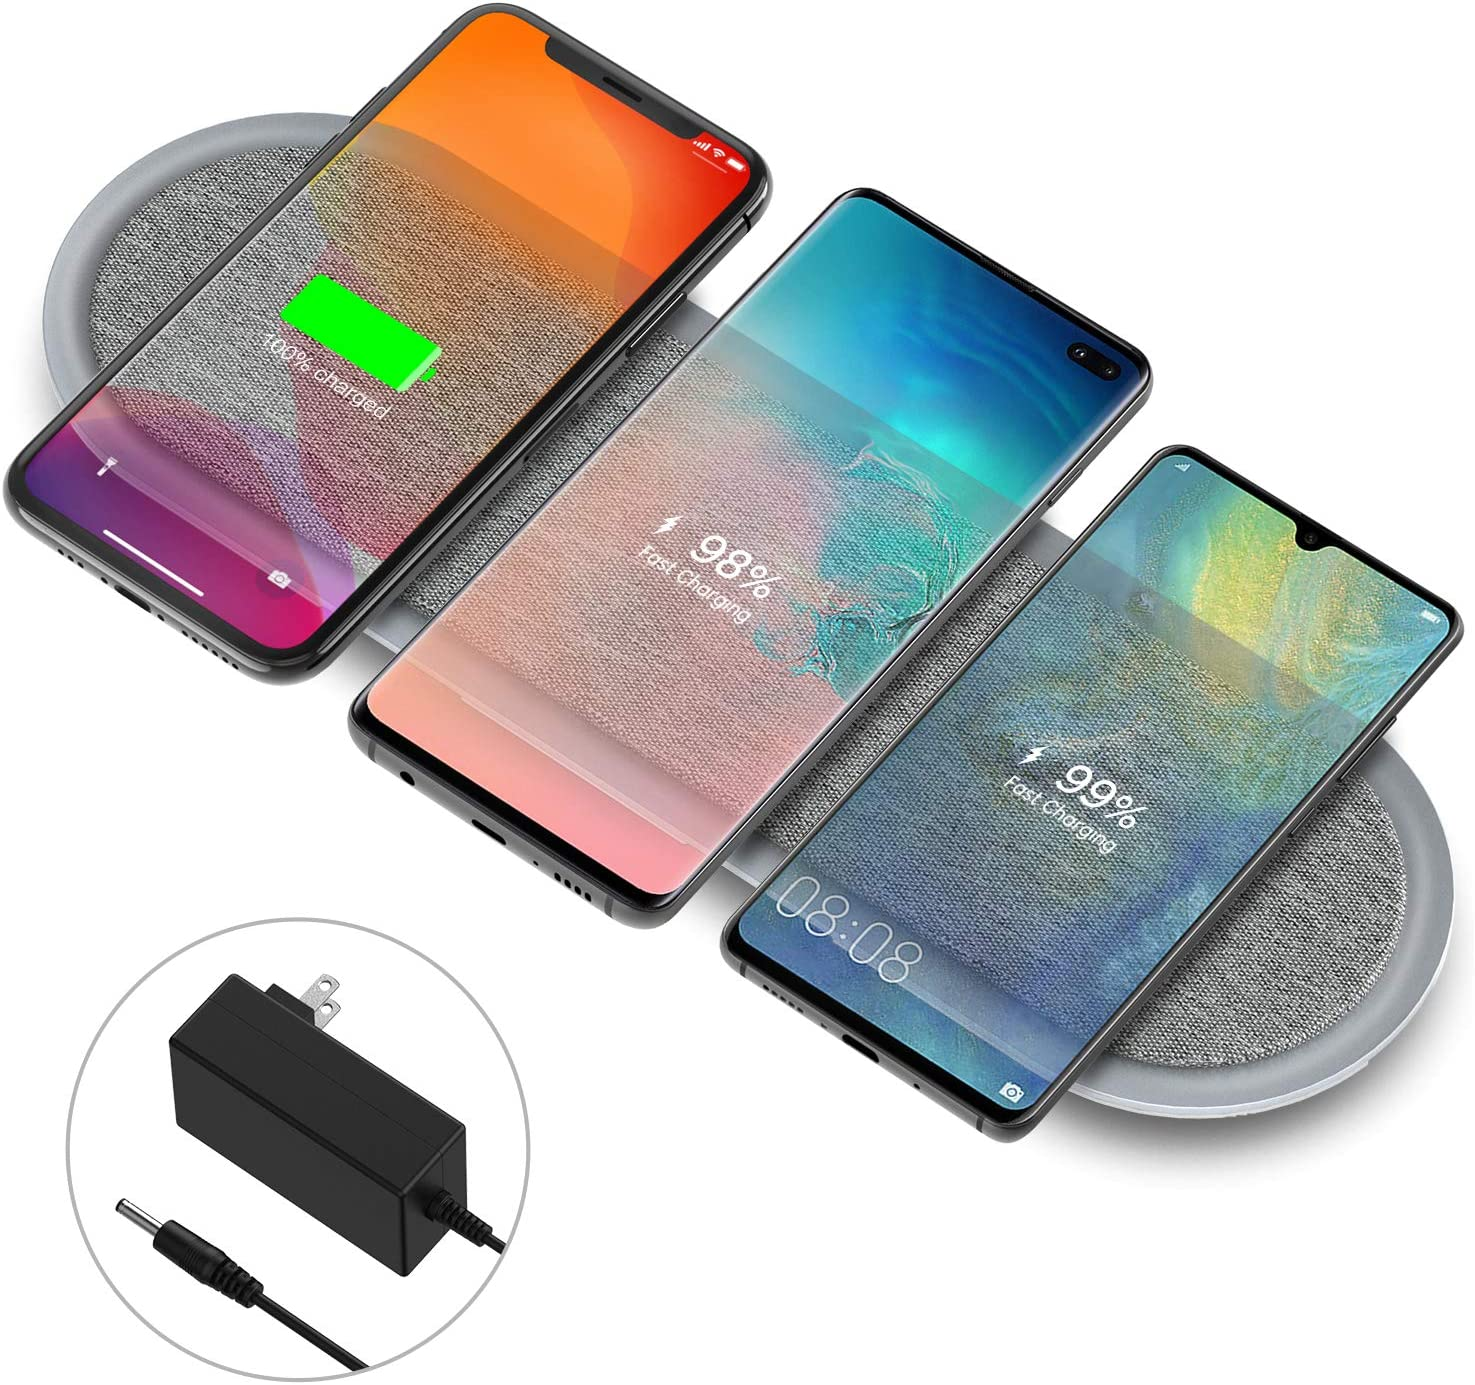 Wireless Charging Station, Lecone Qi Certified Fabric Triple Wireless Charger with Two USB Ports for Multi Devices iPhone SE 2020/11/11 Pro/11 Pro Max/XS/X/8,Galaxy S20/Note 10/S10 (Adapter Included)